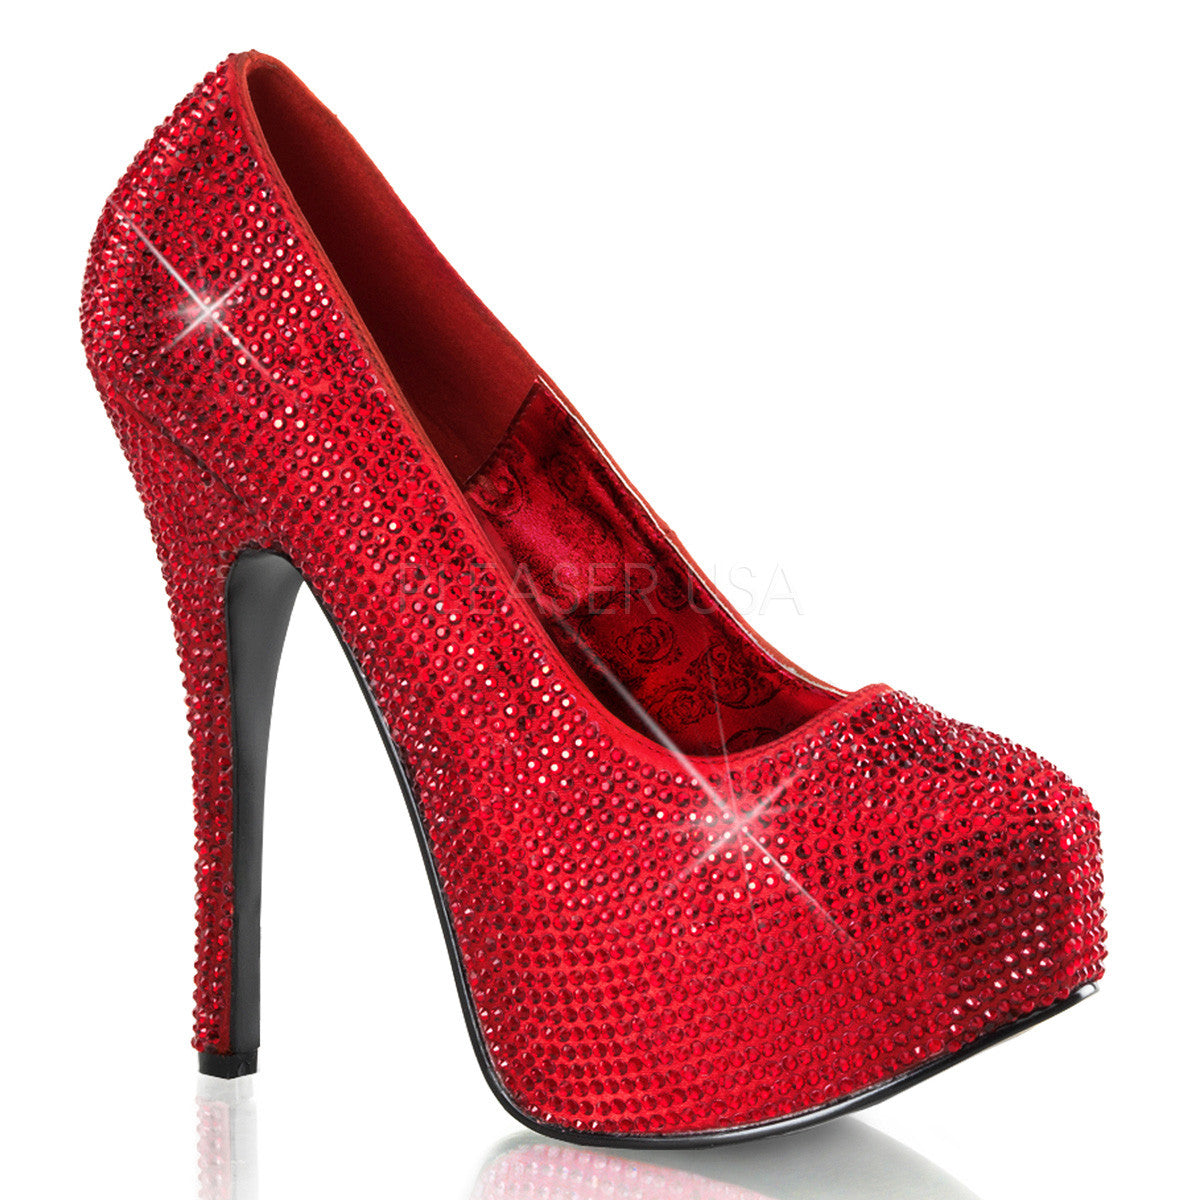 Bordello,Bordello TEEZE-06R Red Sain Rhinestones Pumps - Shoecup.com